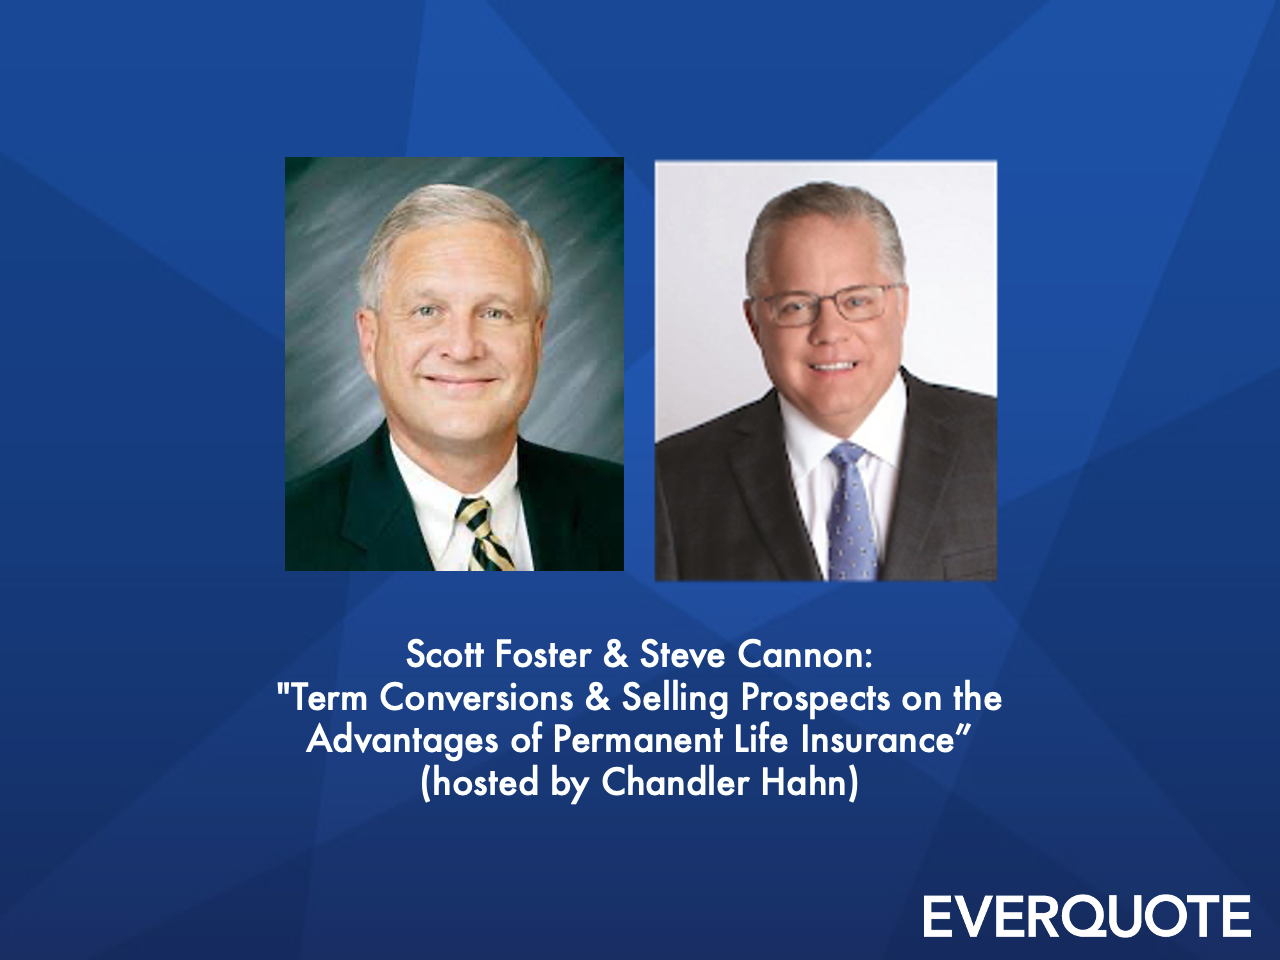 Life Term Conversions & Selling Prospects on the Advantages of Permanent Life Insurance with Steve Cannon + Scott Foster